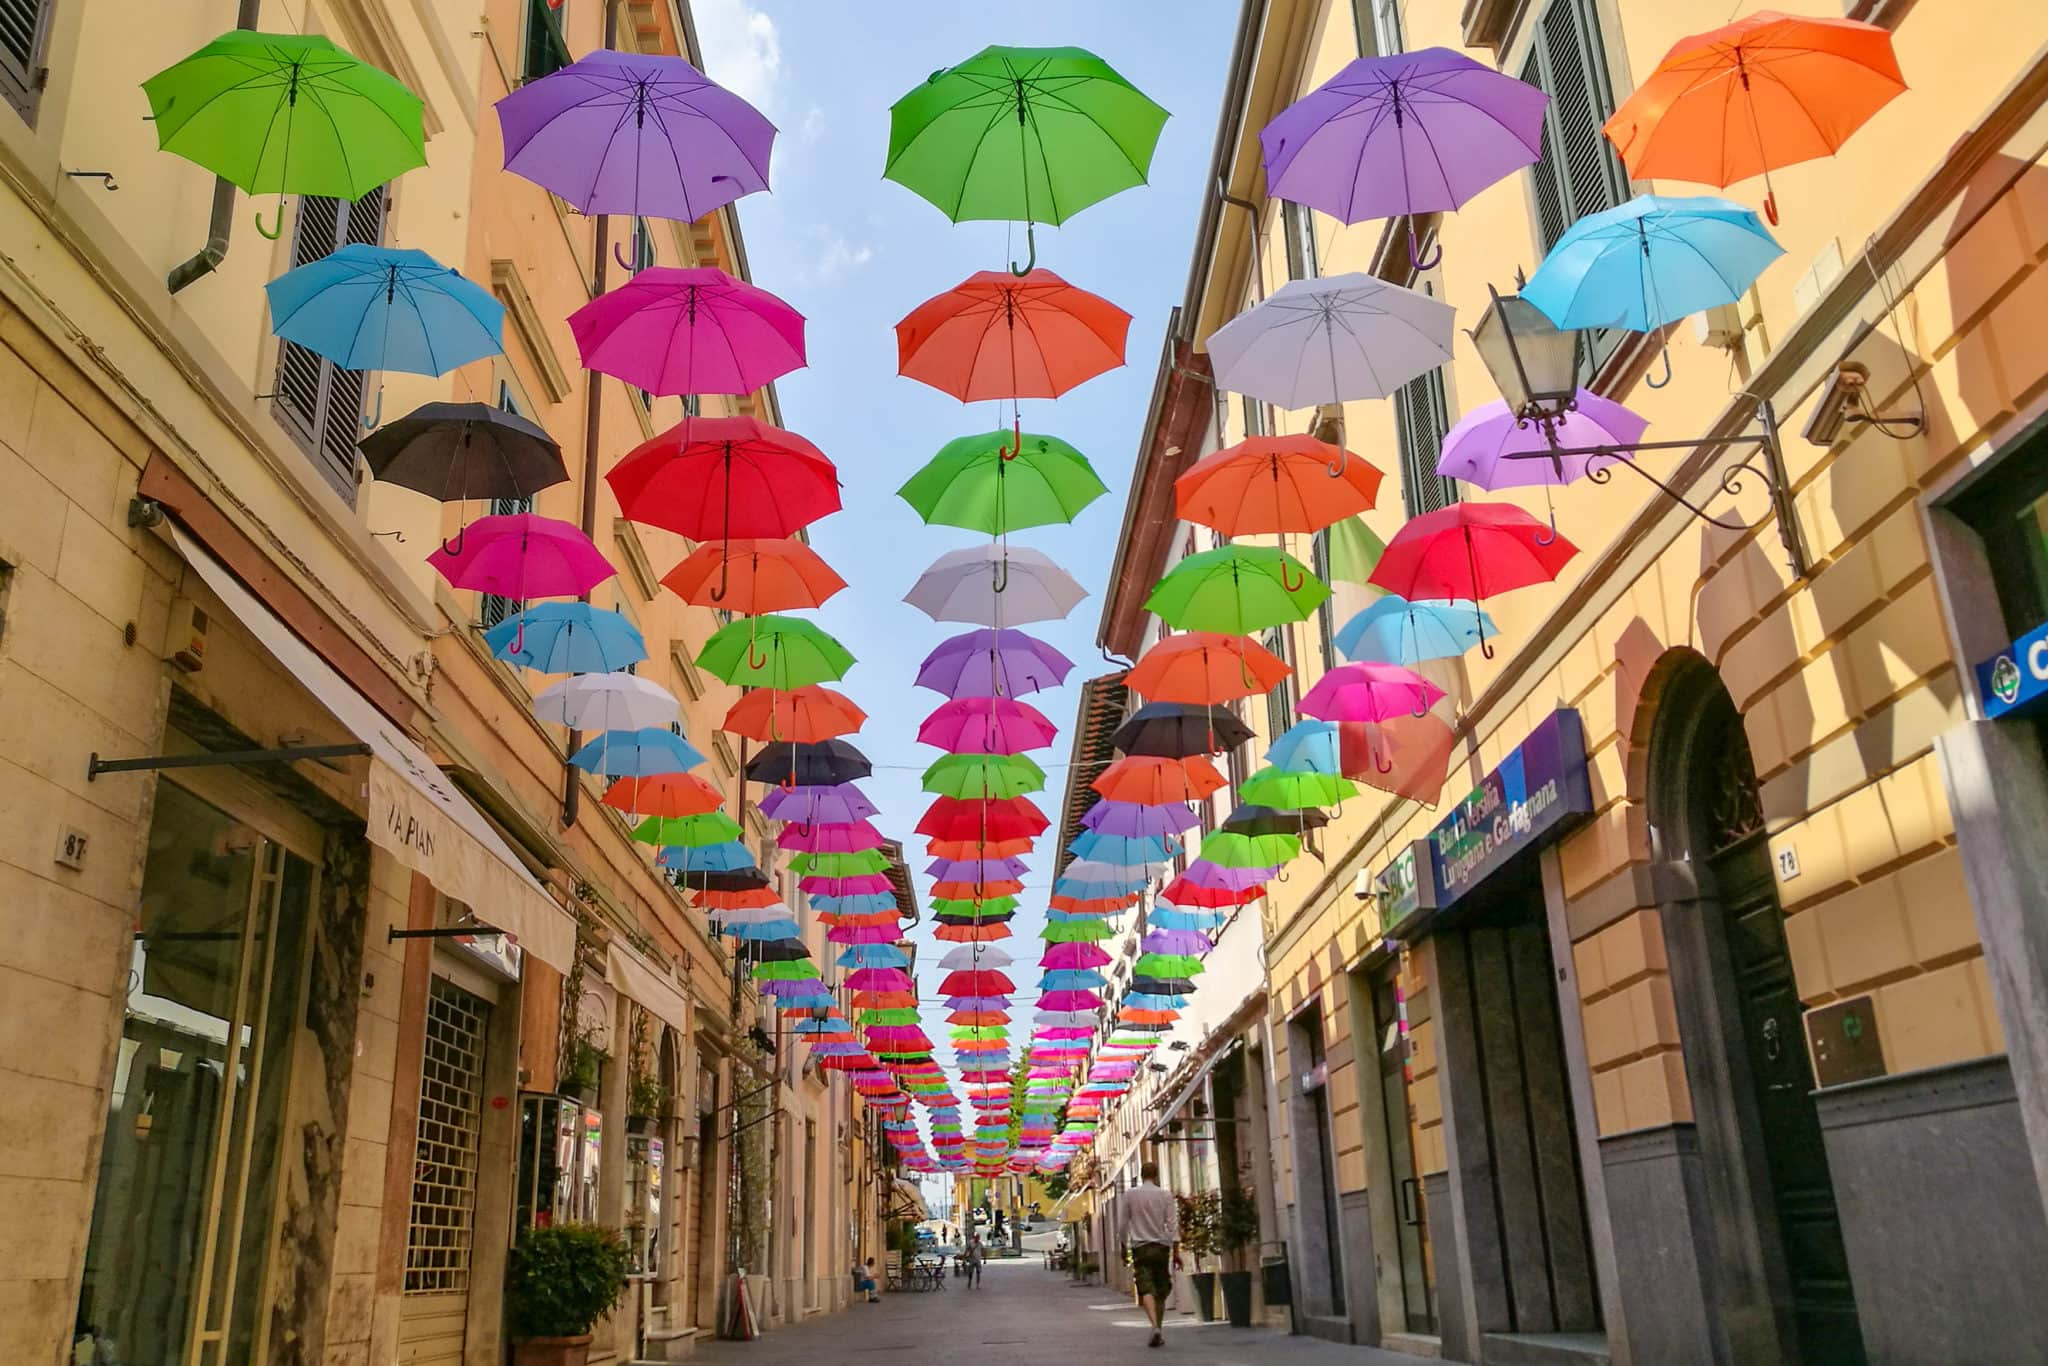 a person walking in Via Mazzini under the floating umbrellas in Pietrasanta